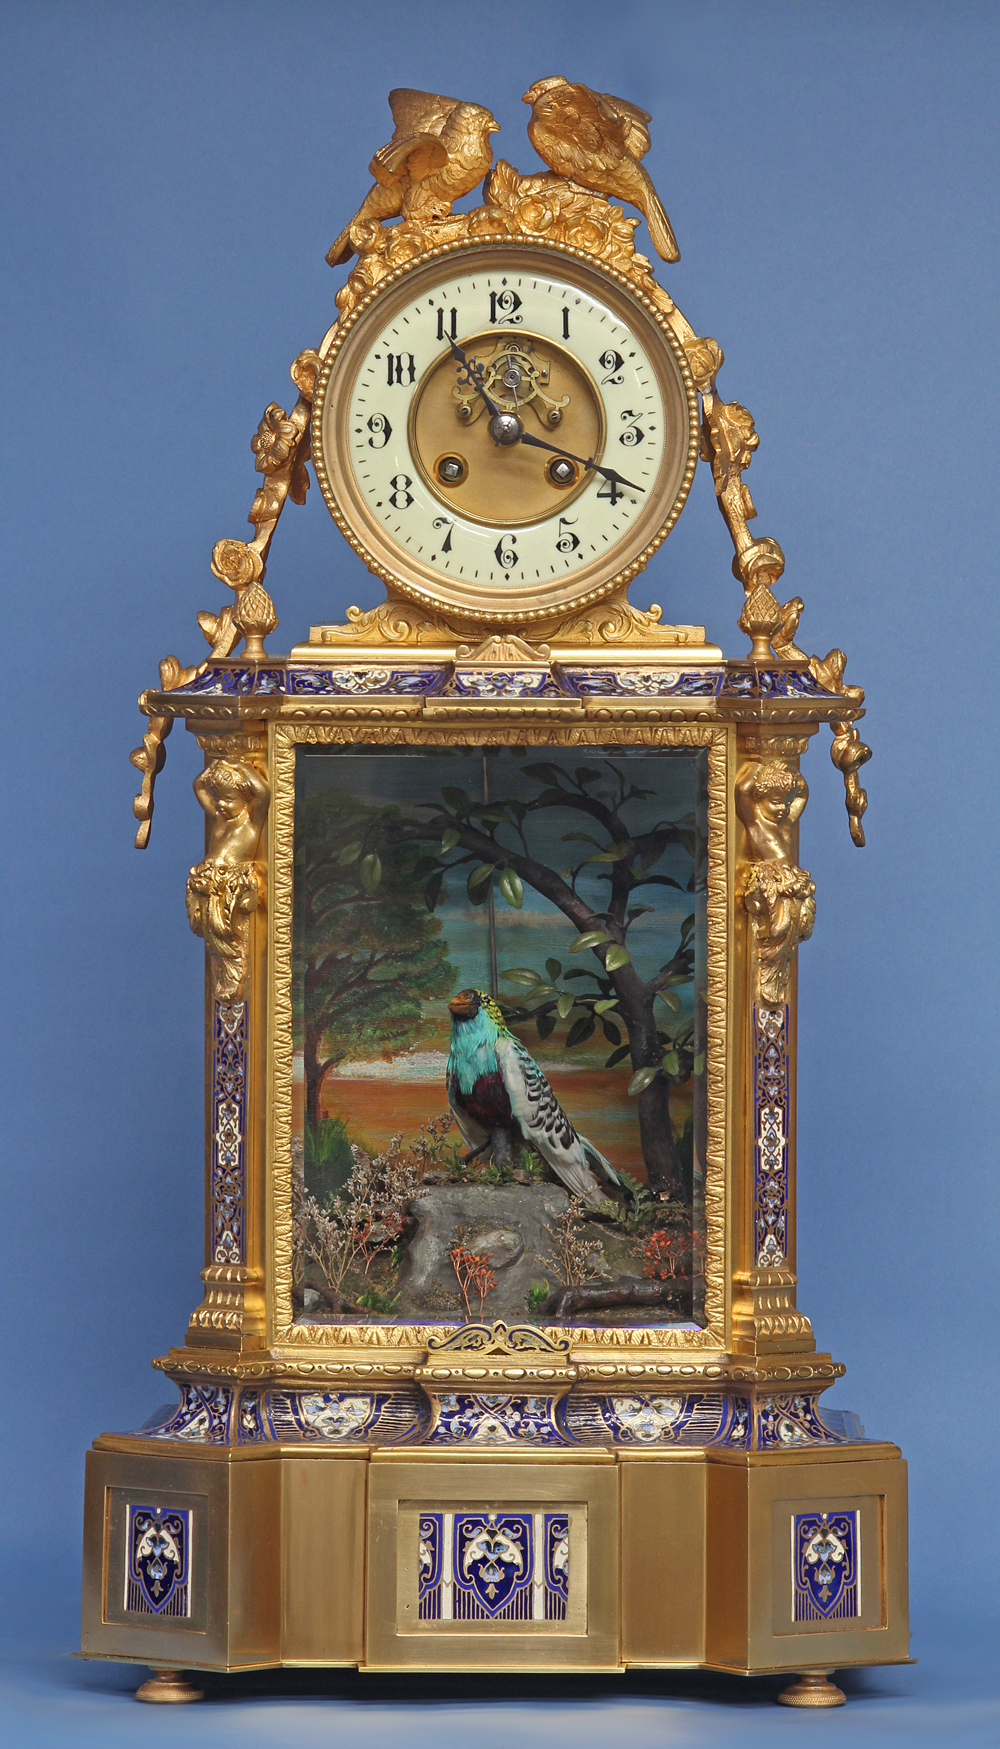 c1895 French Animated Singing Bird Clock